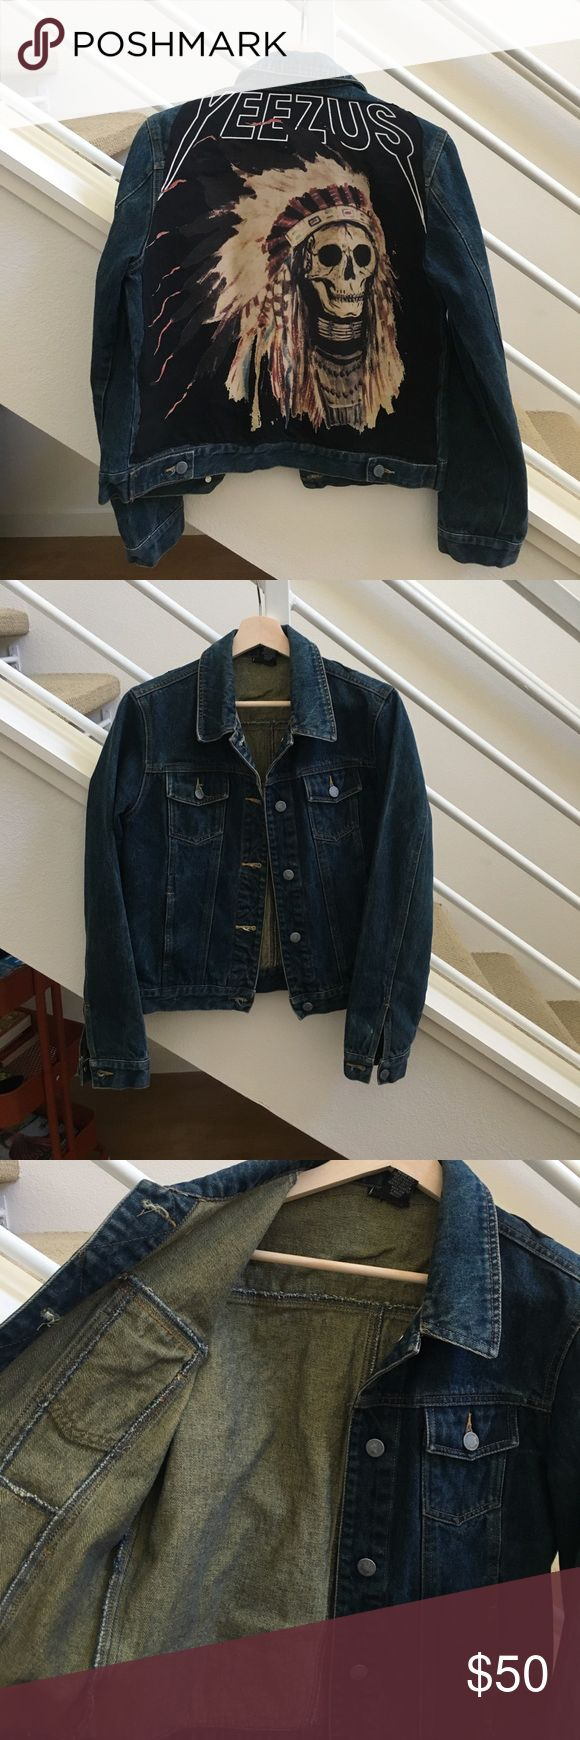 Yeezus Denim jacket NOT official tour merch! Super cool buy at a market. Worn 3xs. Fits size 6-8 women's though it says Large in tag. No stains. Jackets & Coats Jean Jackets